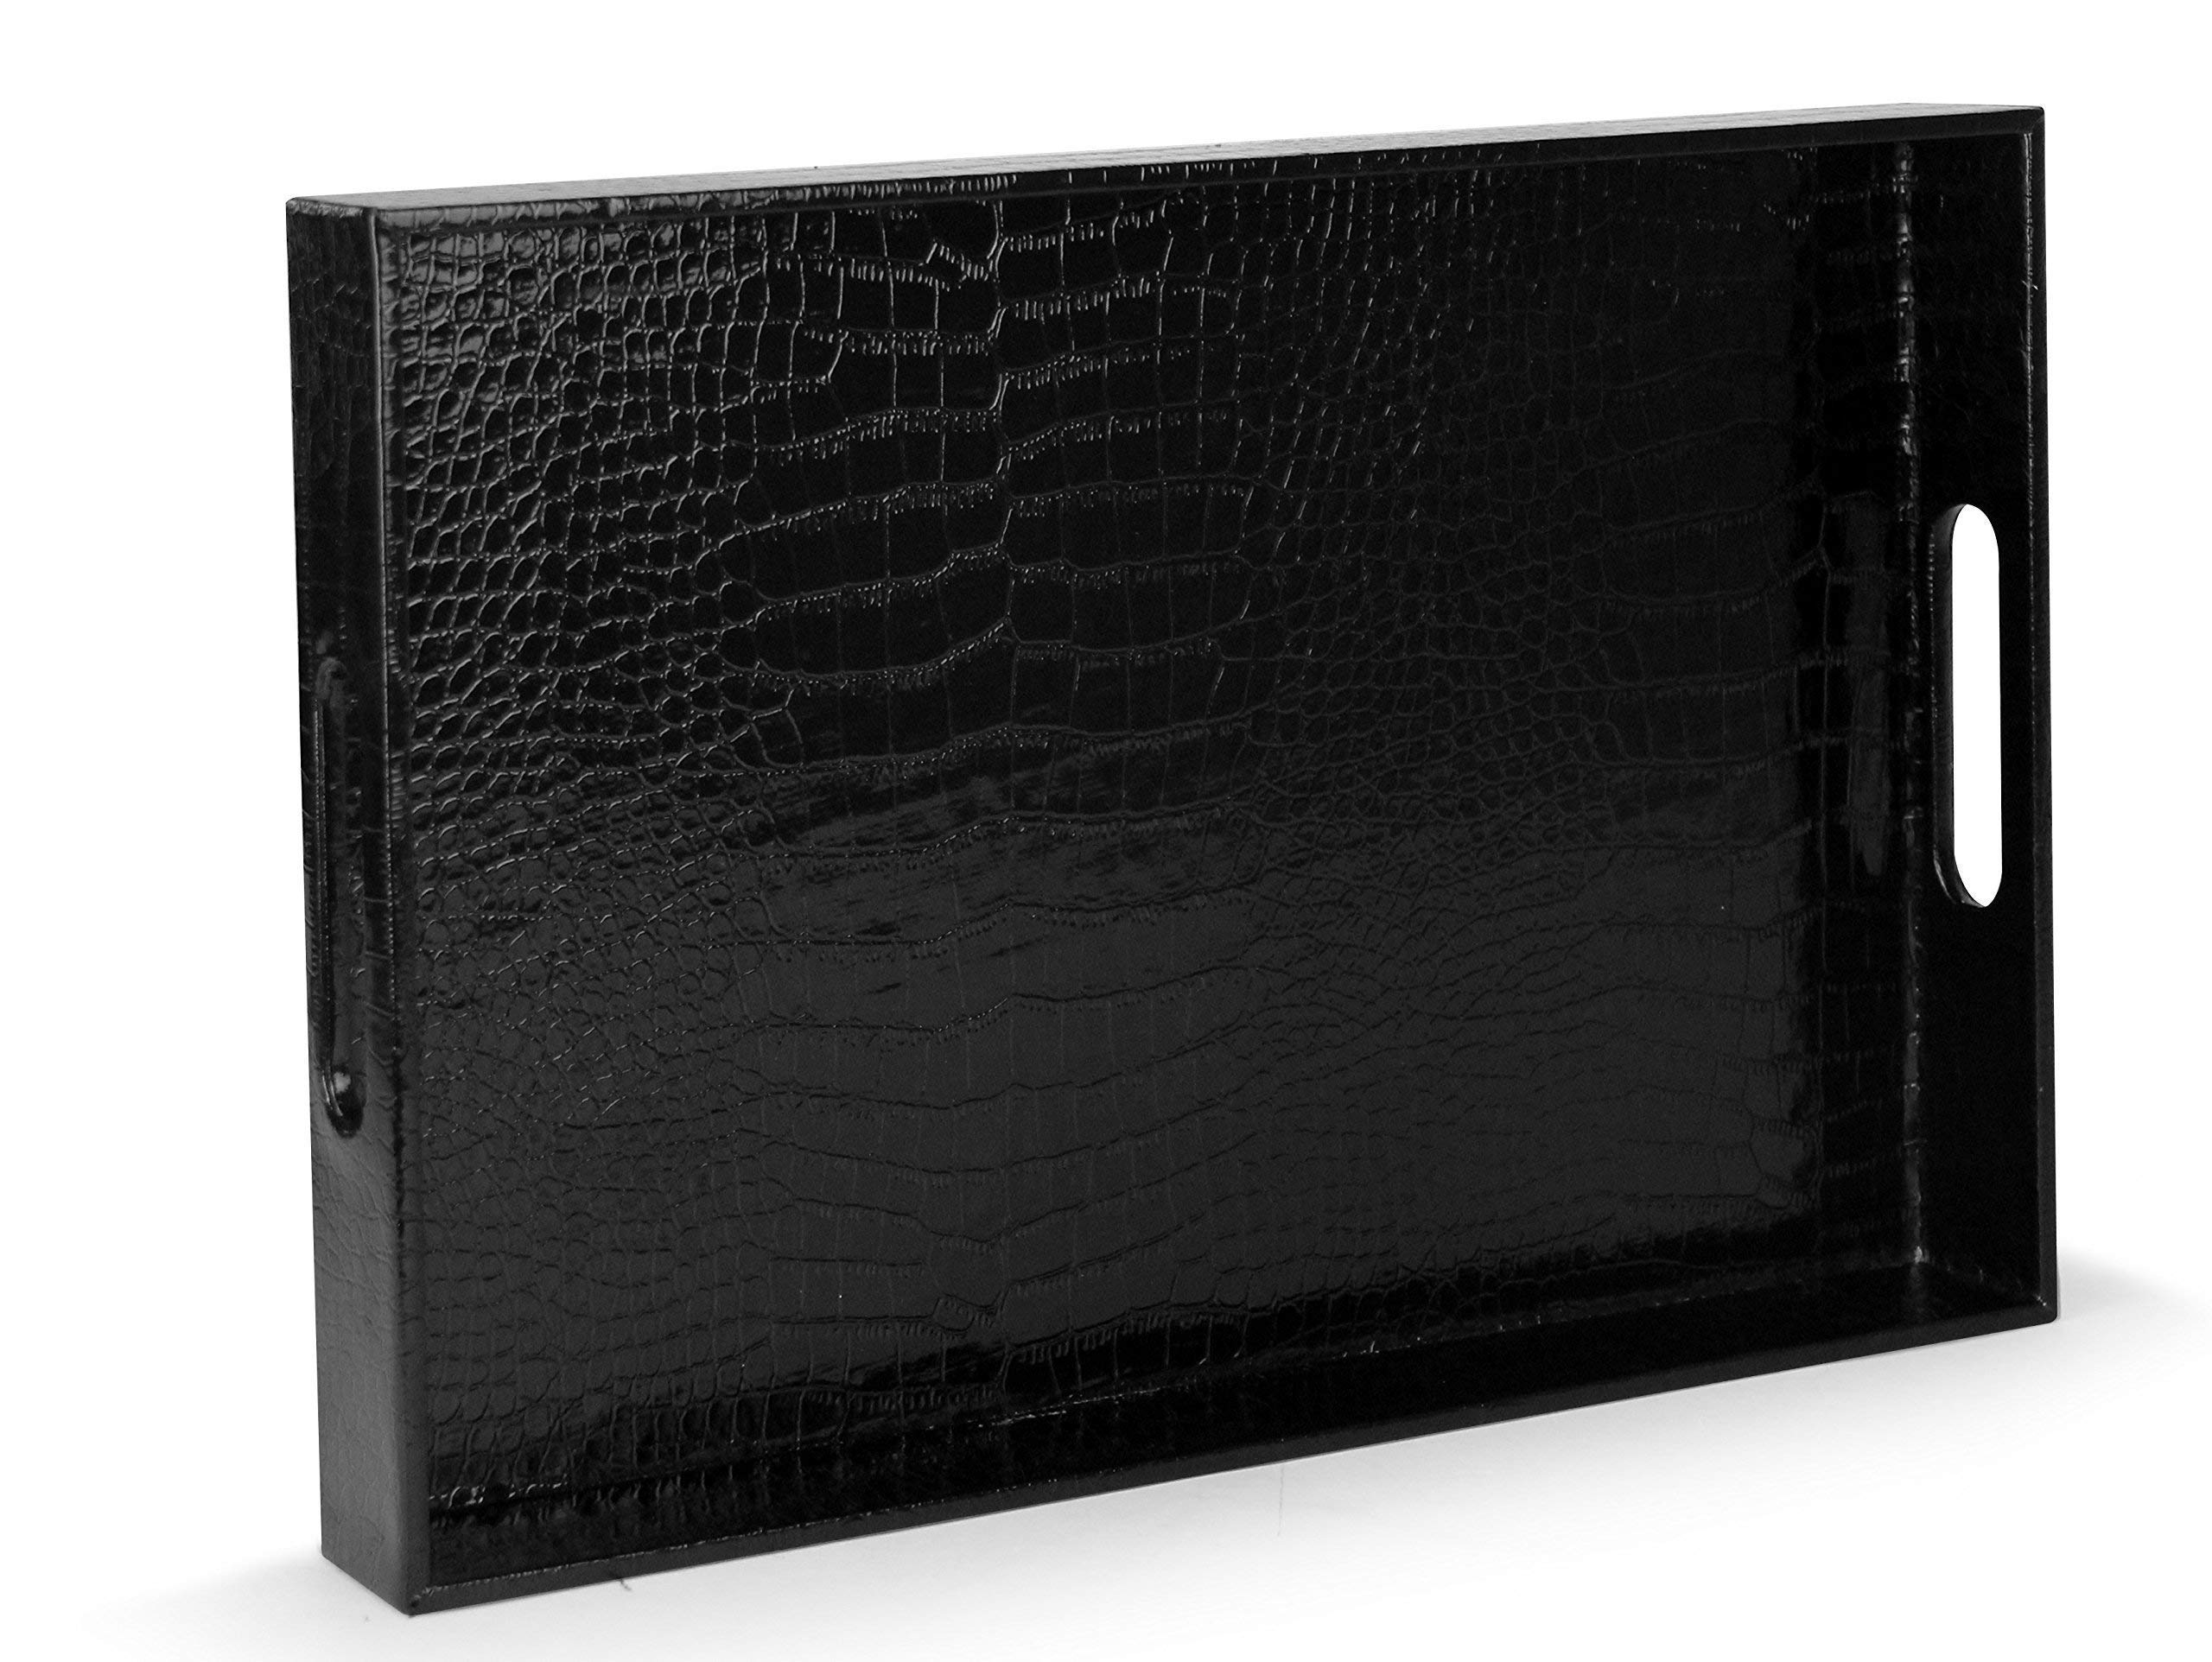 Beautiful Modern Elegant Black 18''x12'' Rectangle Glossy Alligator Croc Decorative Ottoman Coffee Table Perfume Living Dining Room Kitchen Serving Tray With Handles By Home Redefined For All Occasion's by HOME REDEFINED